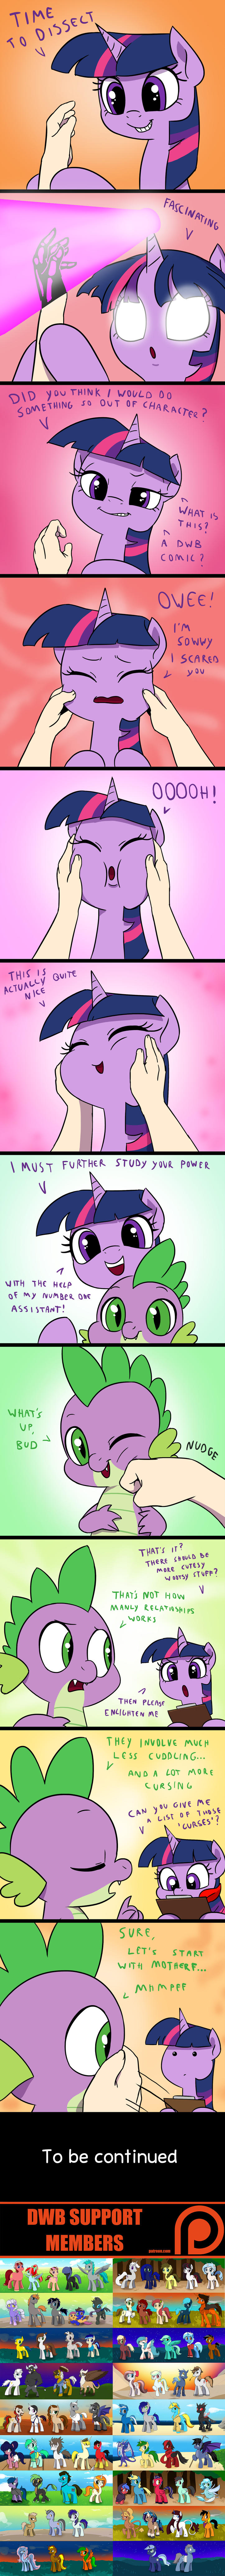 Twilight Simulator part 2 by doubleWbrothers